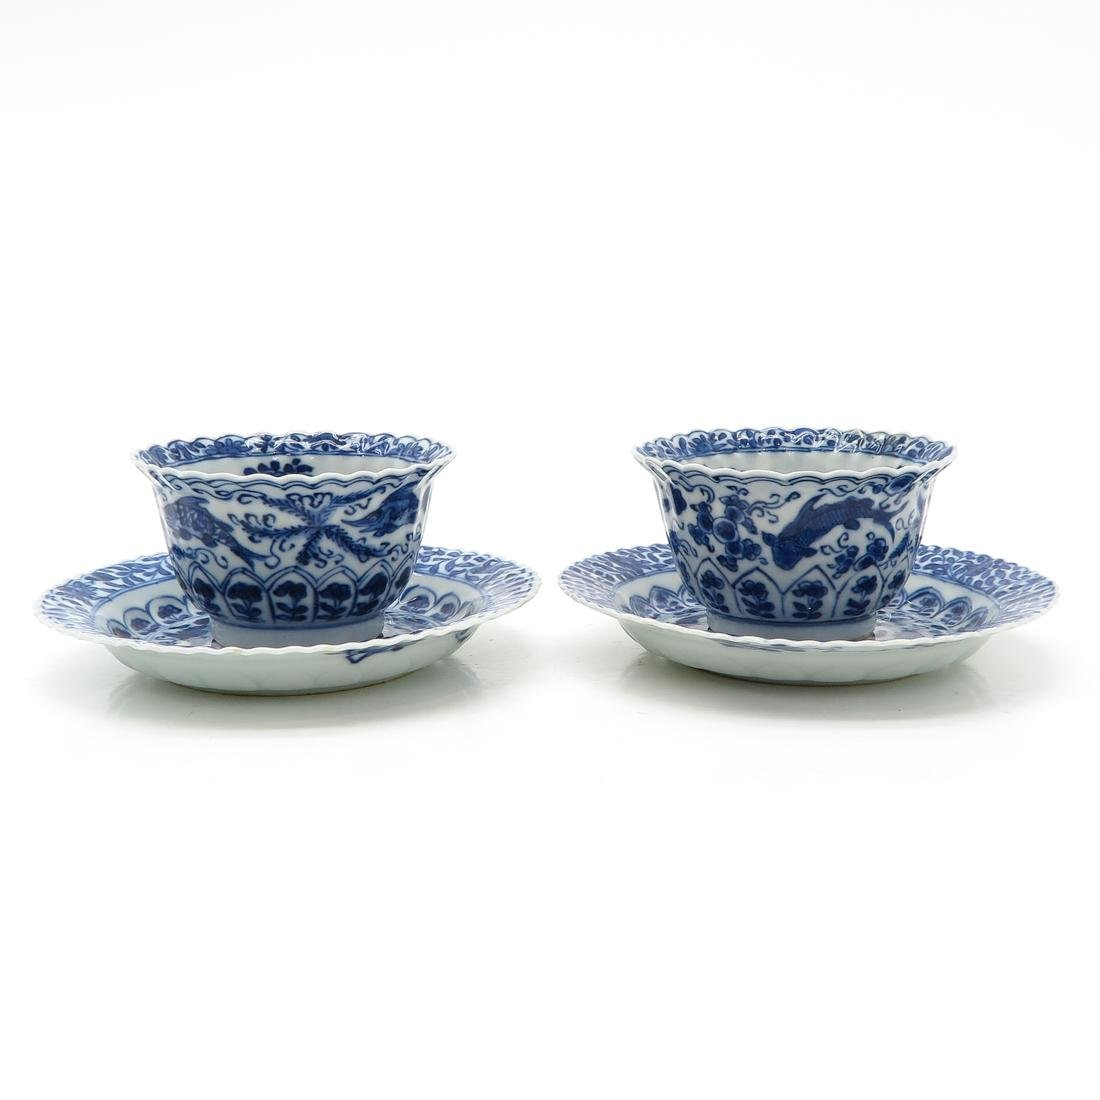 Lot of 2 Cups and Saucers - 4